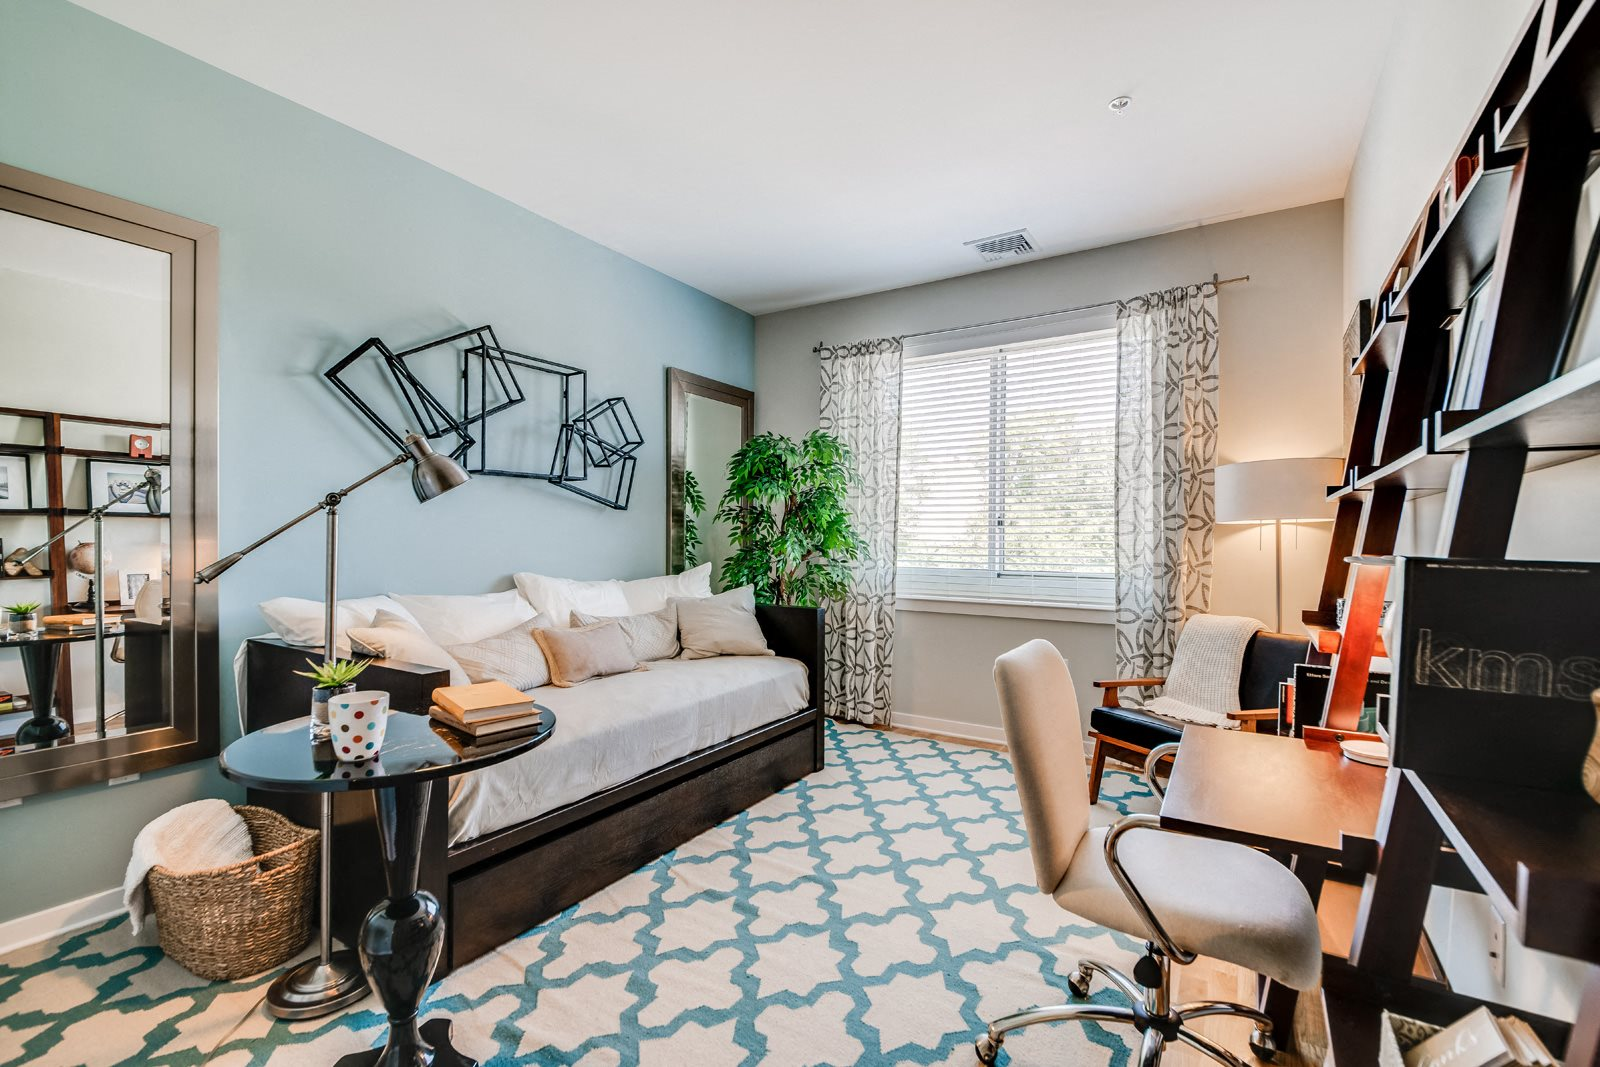 Condo-style living at Twenty50 by Windsor, 2050 Central Road, Fort Lee